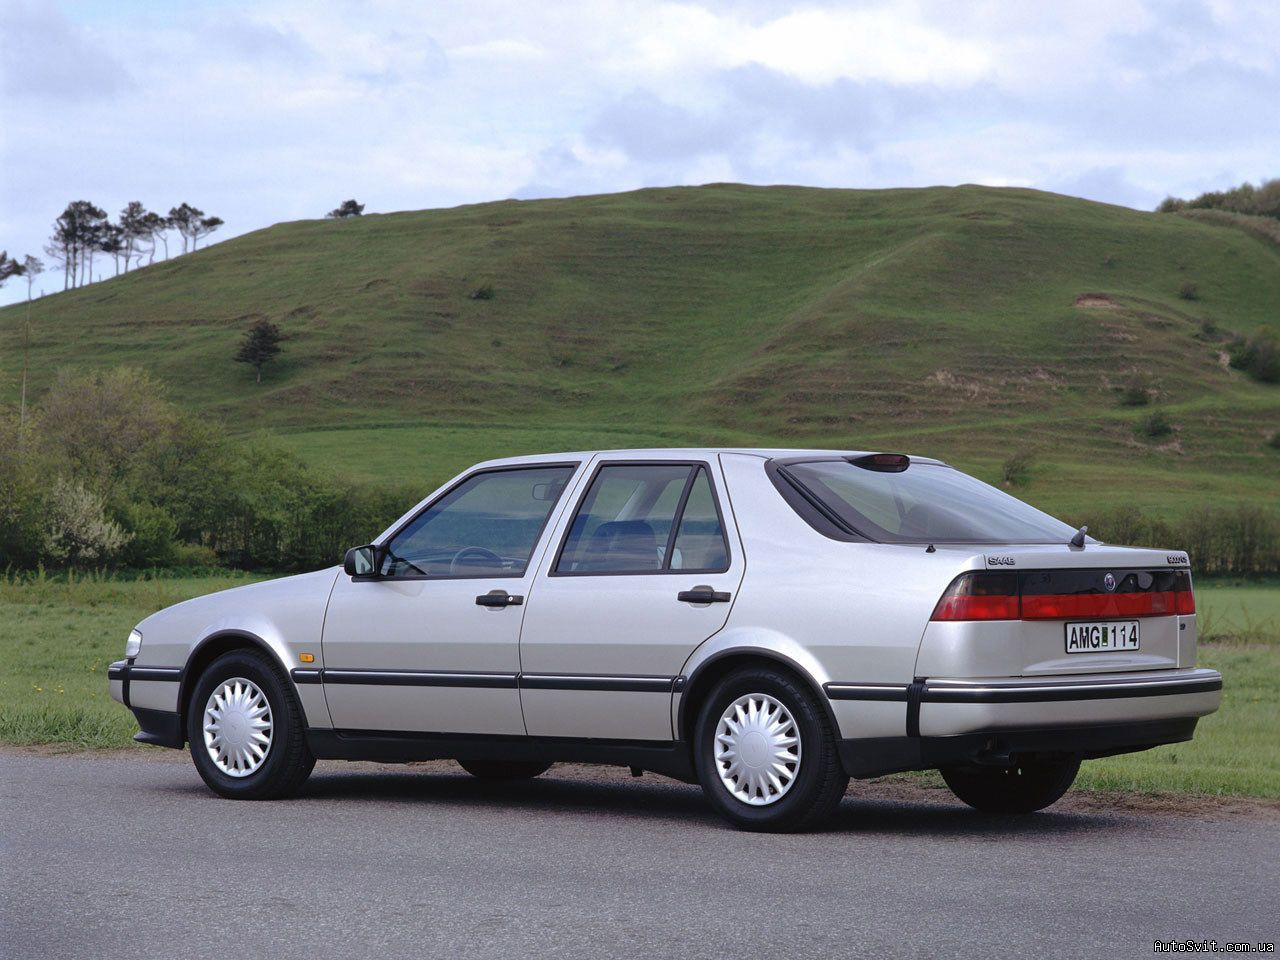 SAAB 9000 CS — a model manufactured by SAAB. The model received many reviews